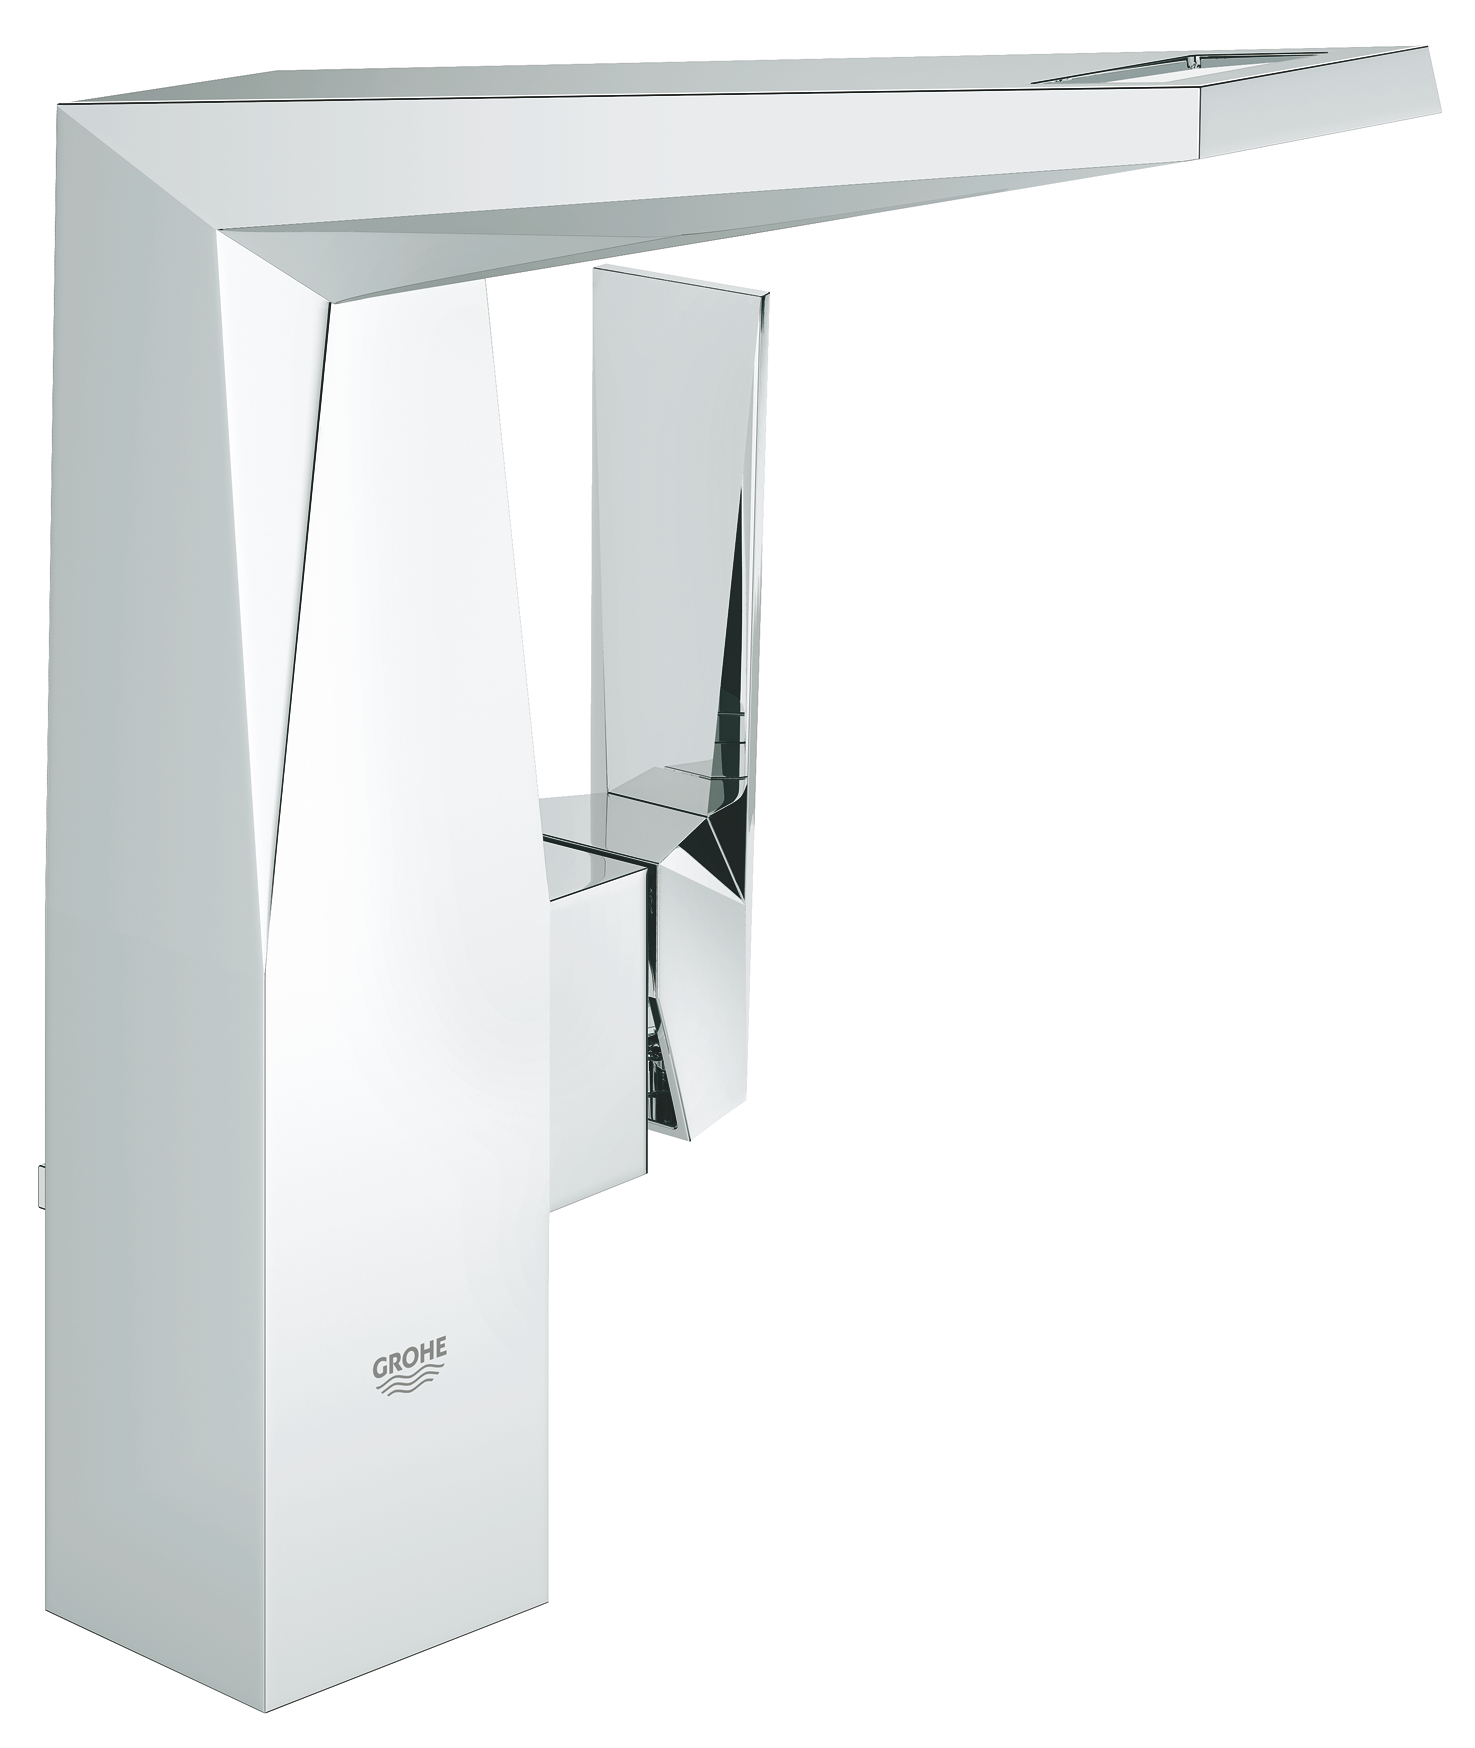 Pesuallashana Grohe Allure Brilliant (23109000)